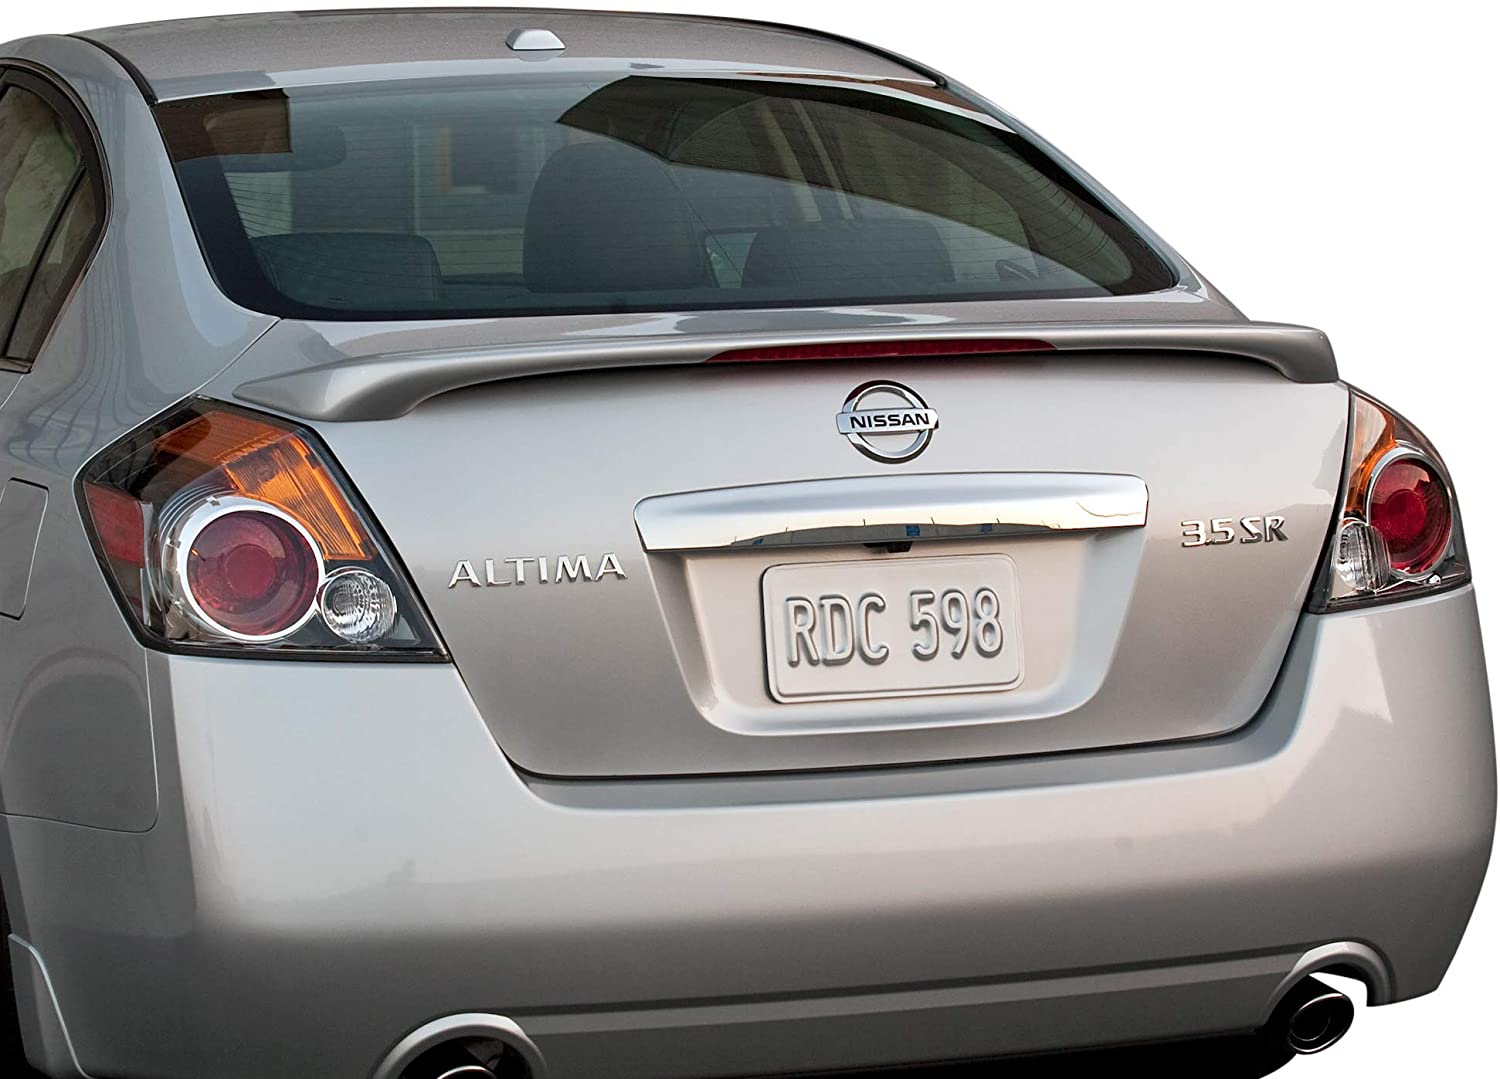 Factory Style Spoiler for the Nissan Altima Sedan Painted in the Factory Paint Code of Your Choice #255 KH3